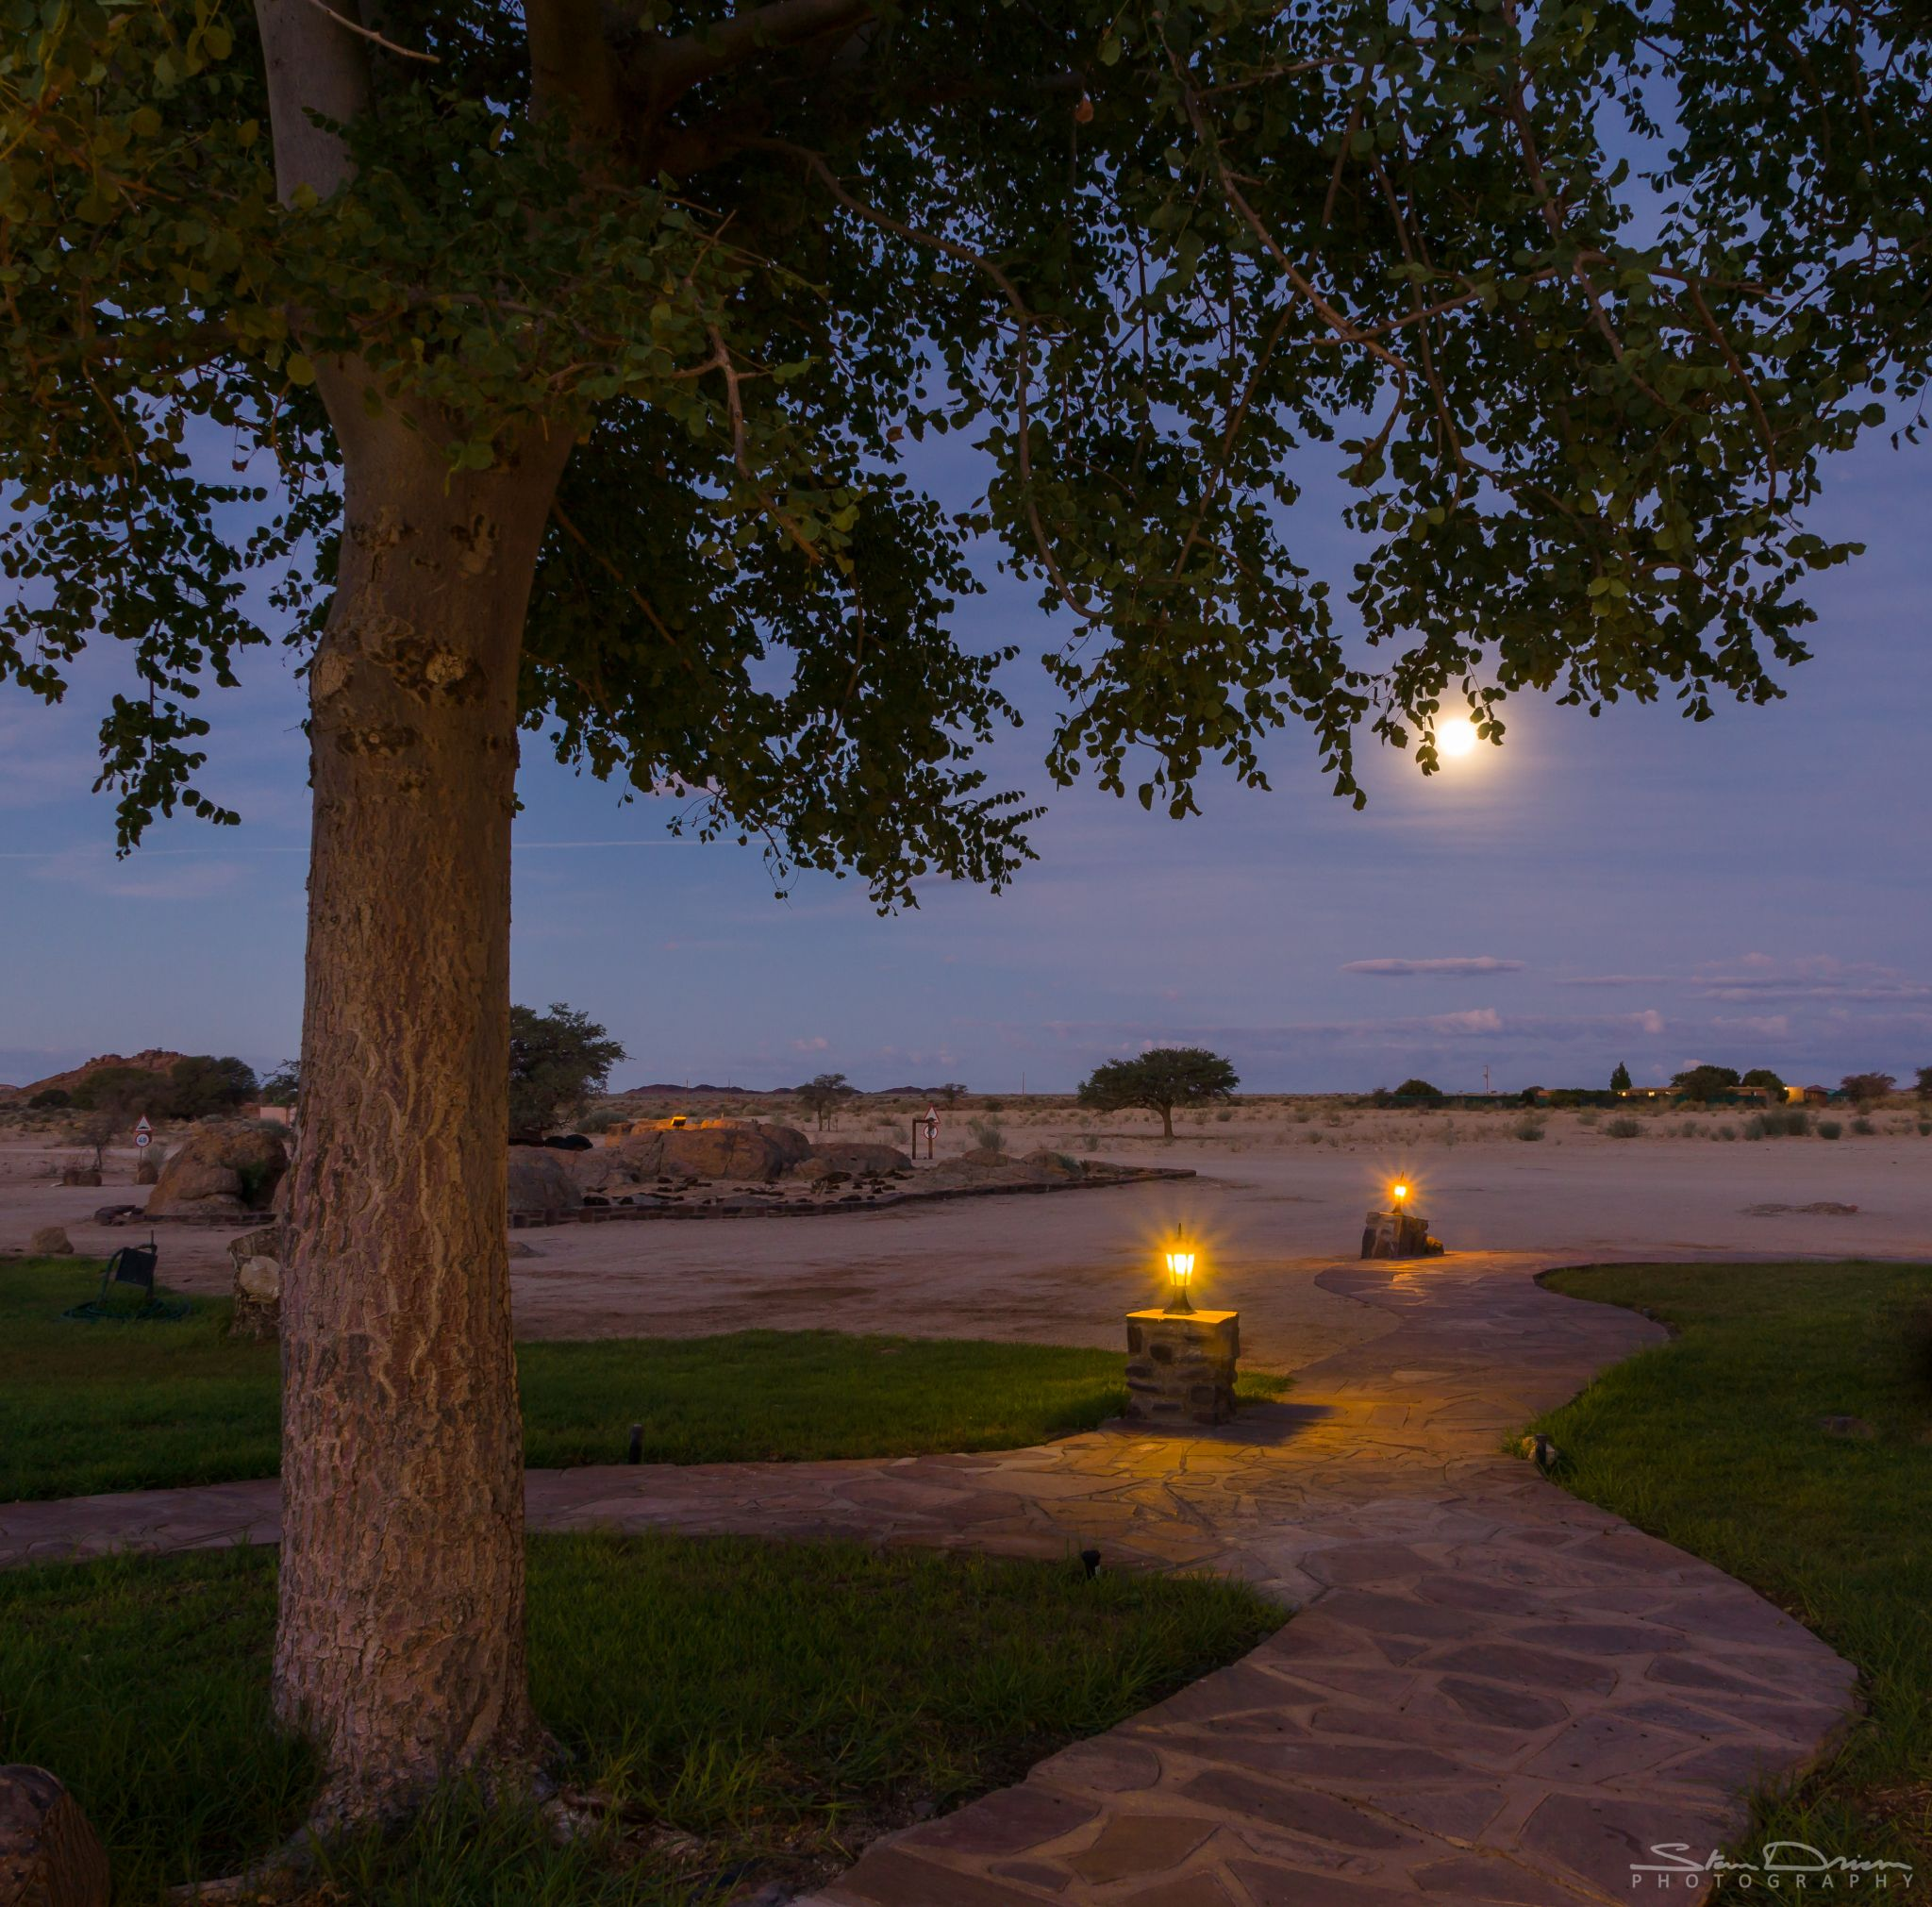 Path to the moon, Namibia